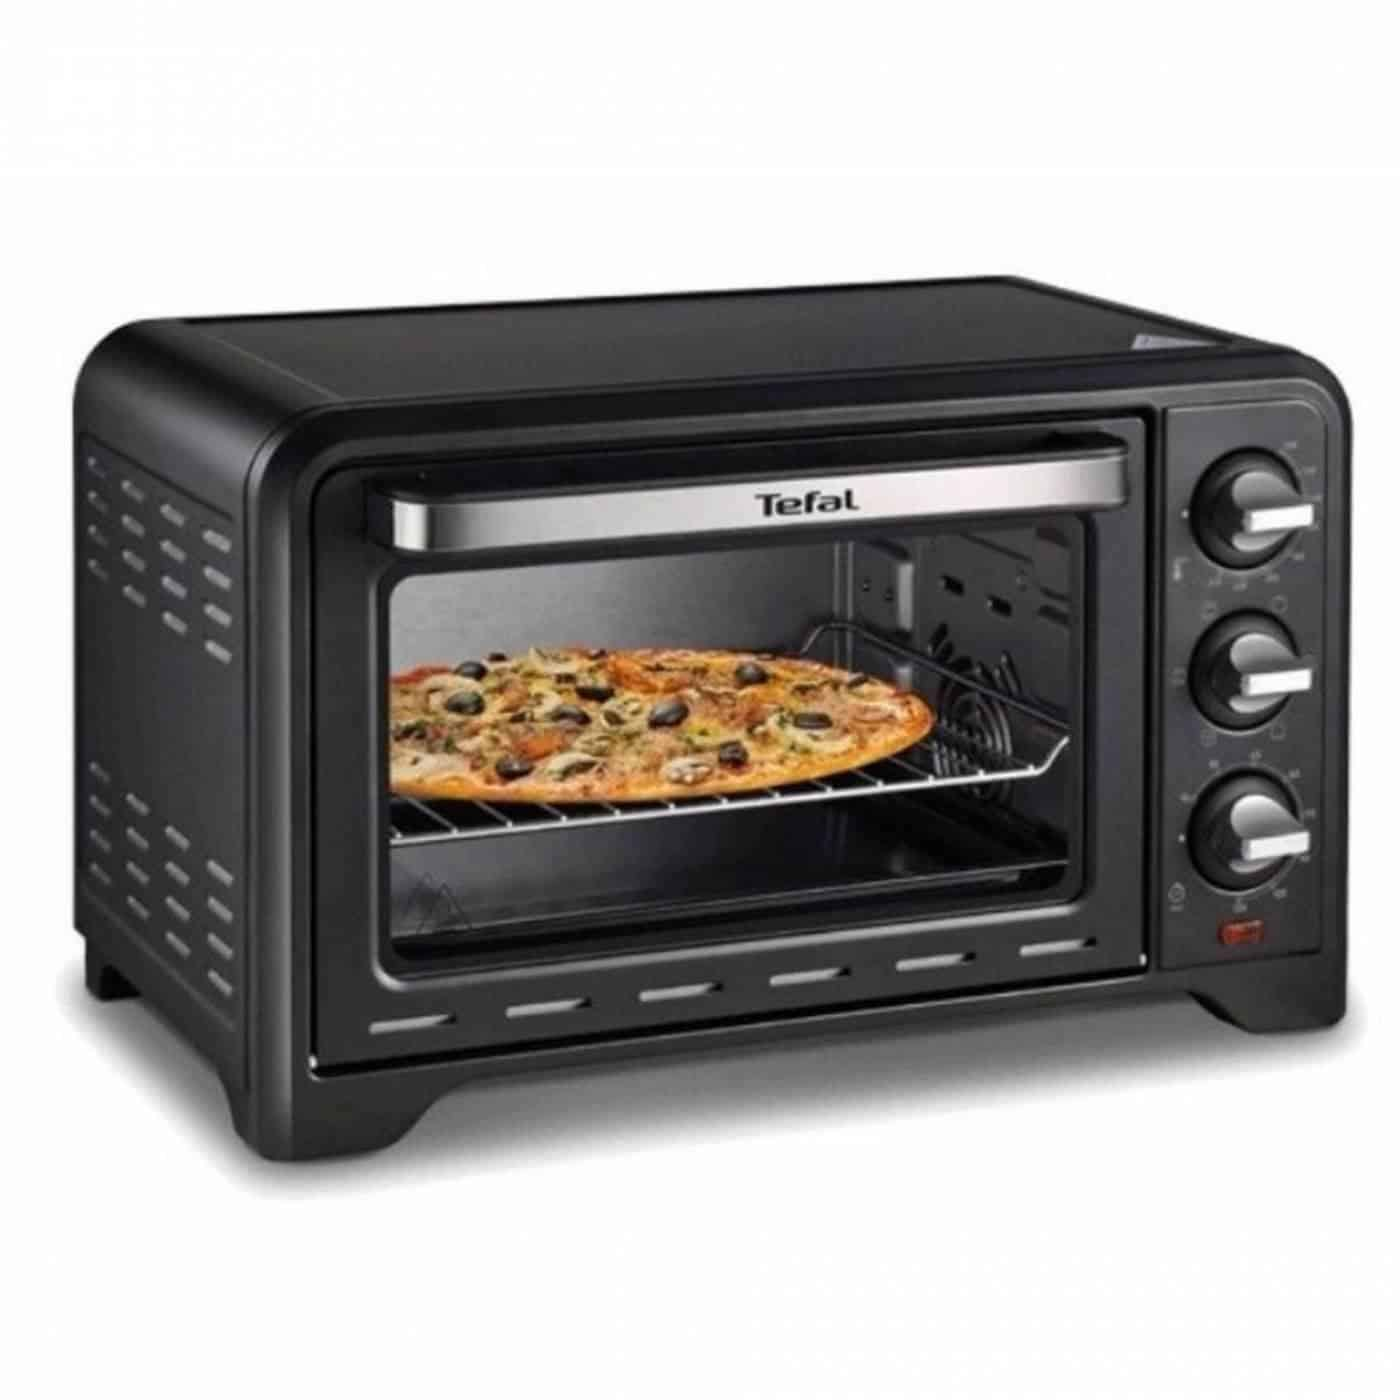 Compare Tefal 19L Optimo Oven OF4448 Price In Singapore - Best Buy ...